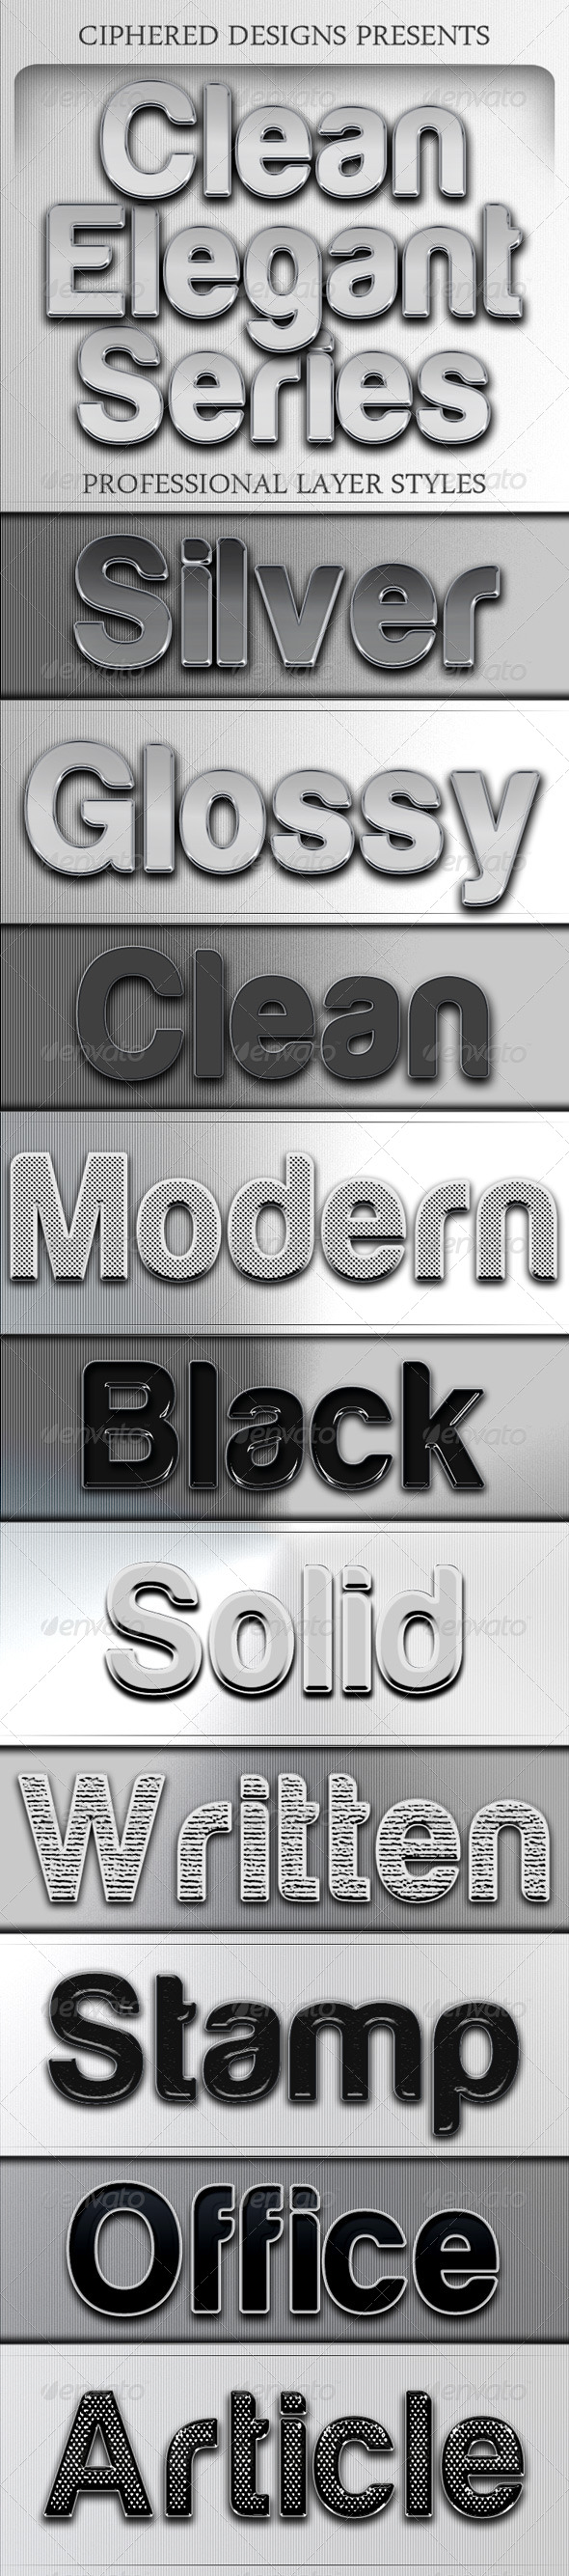 GraphicRiver Clean Elegant Series Professional Layer Styles 4119875